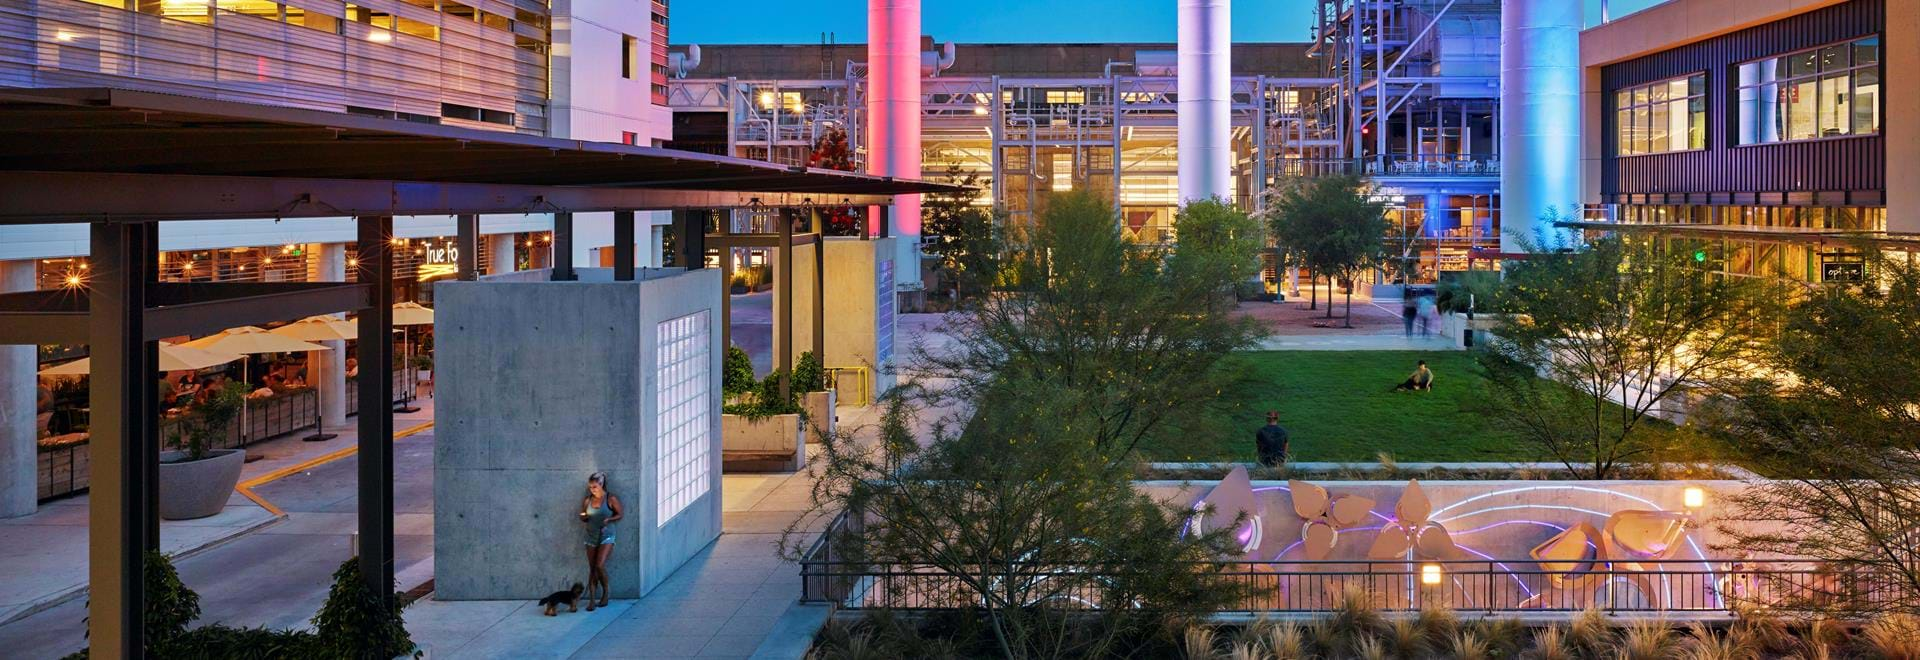 Seaholm Mixed-Use Development courtyard area